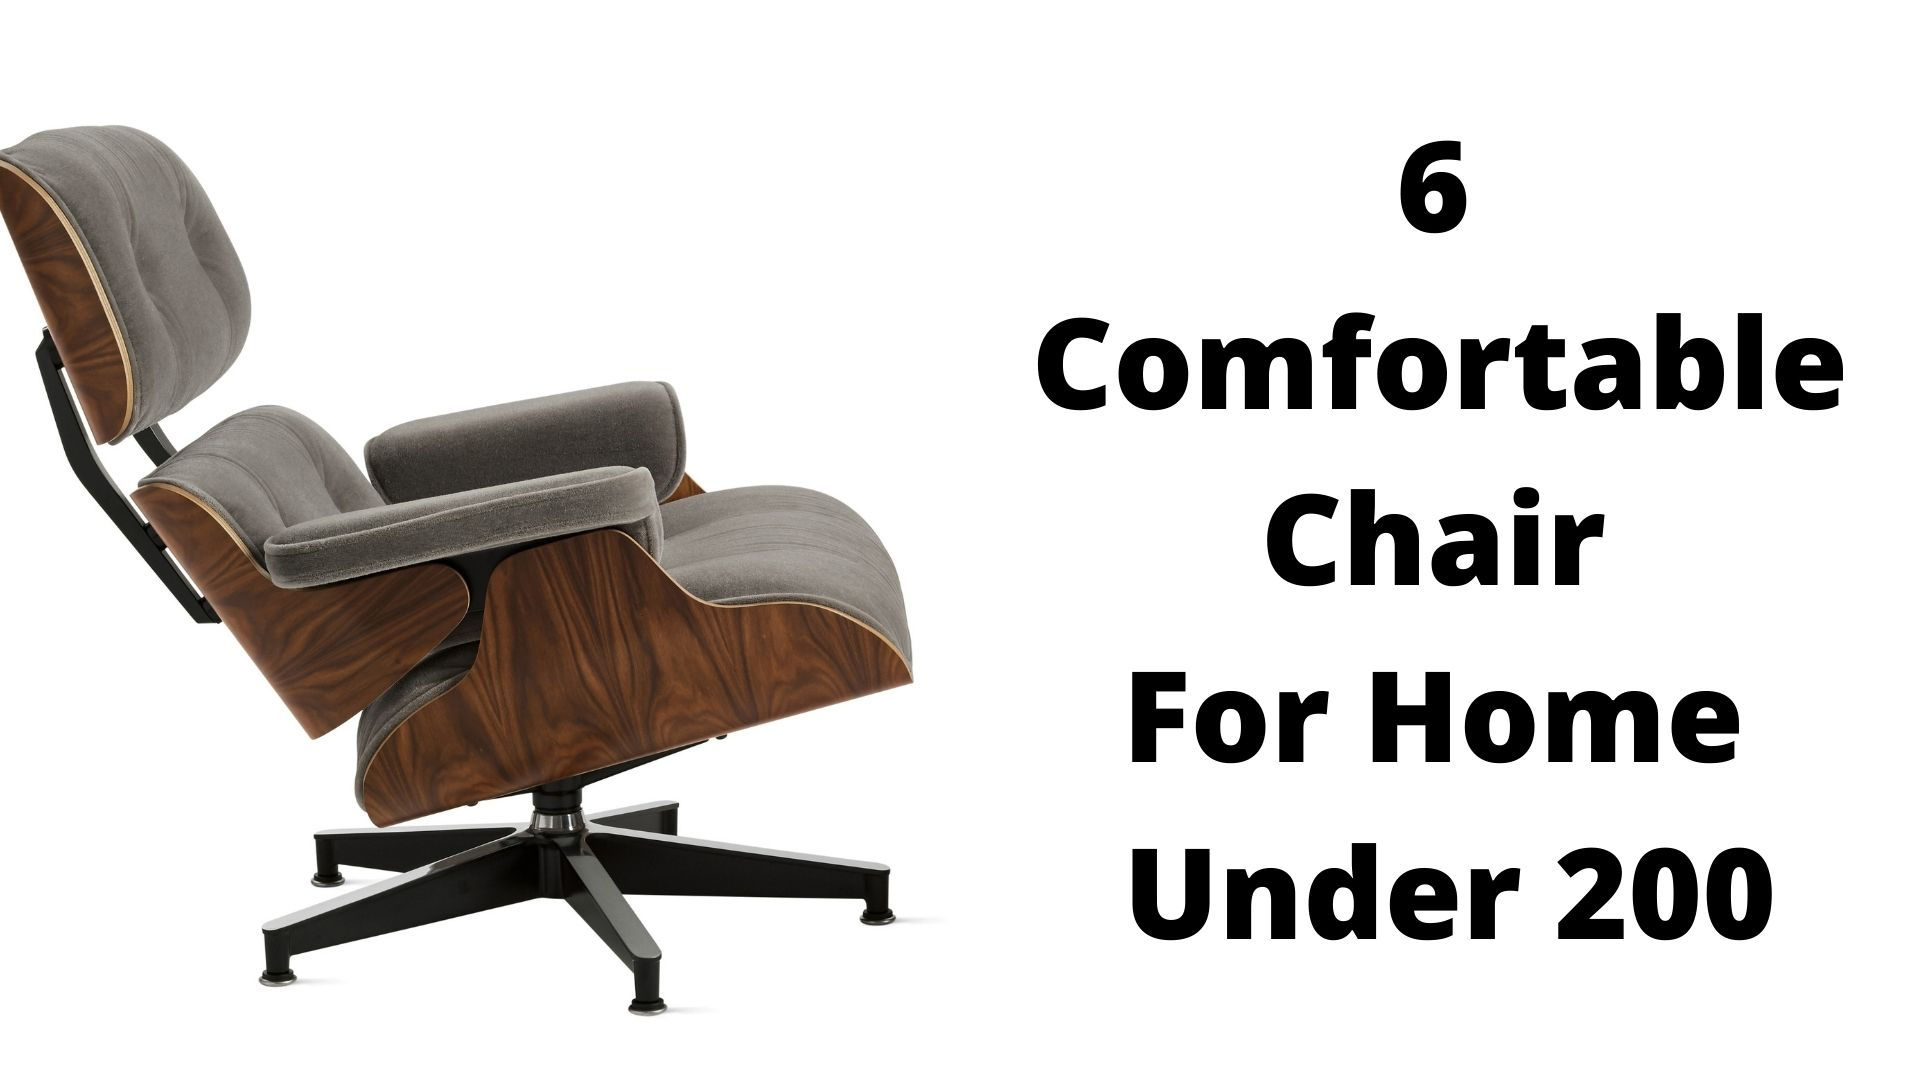 Comfortable Chair For Home Under 200